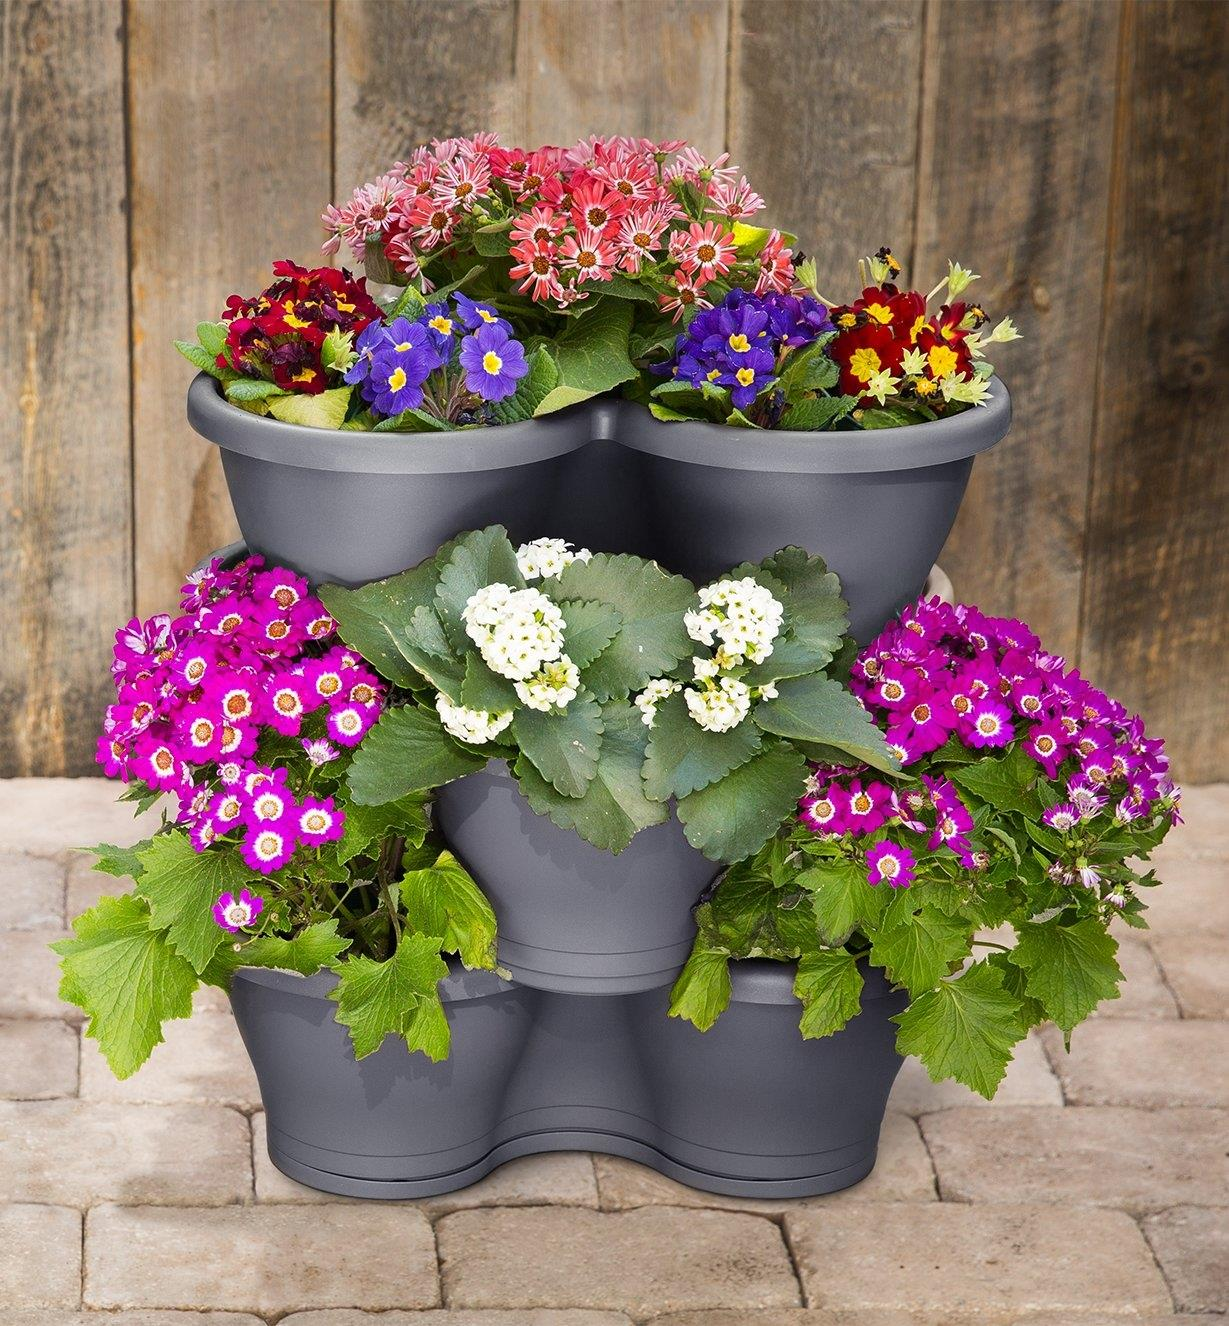 Elho planter pots planted with various flowers